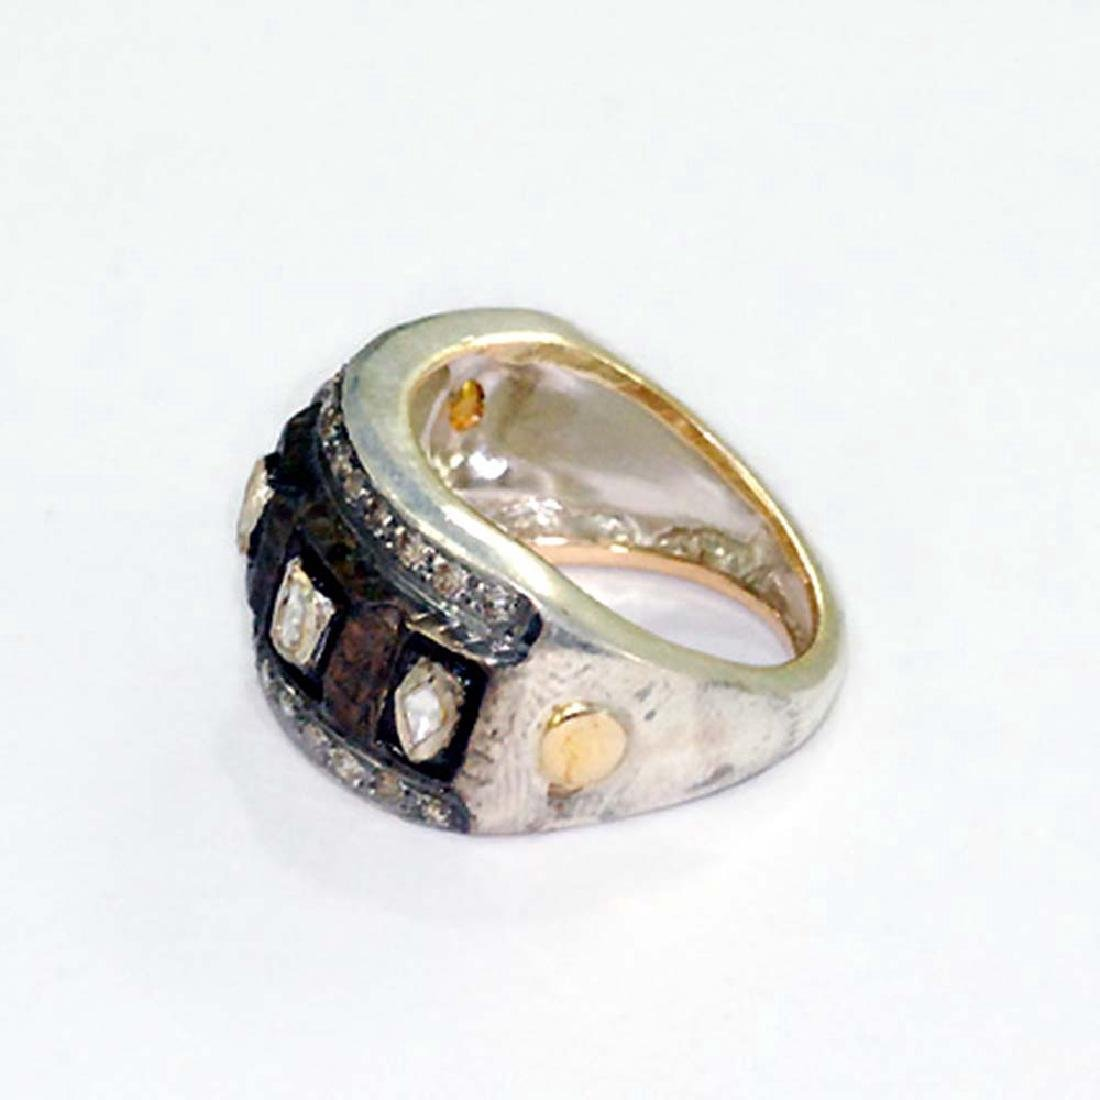 14K Gold Sterling Silver Pave Diamond Ring, .53ctw - 3